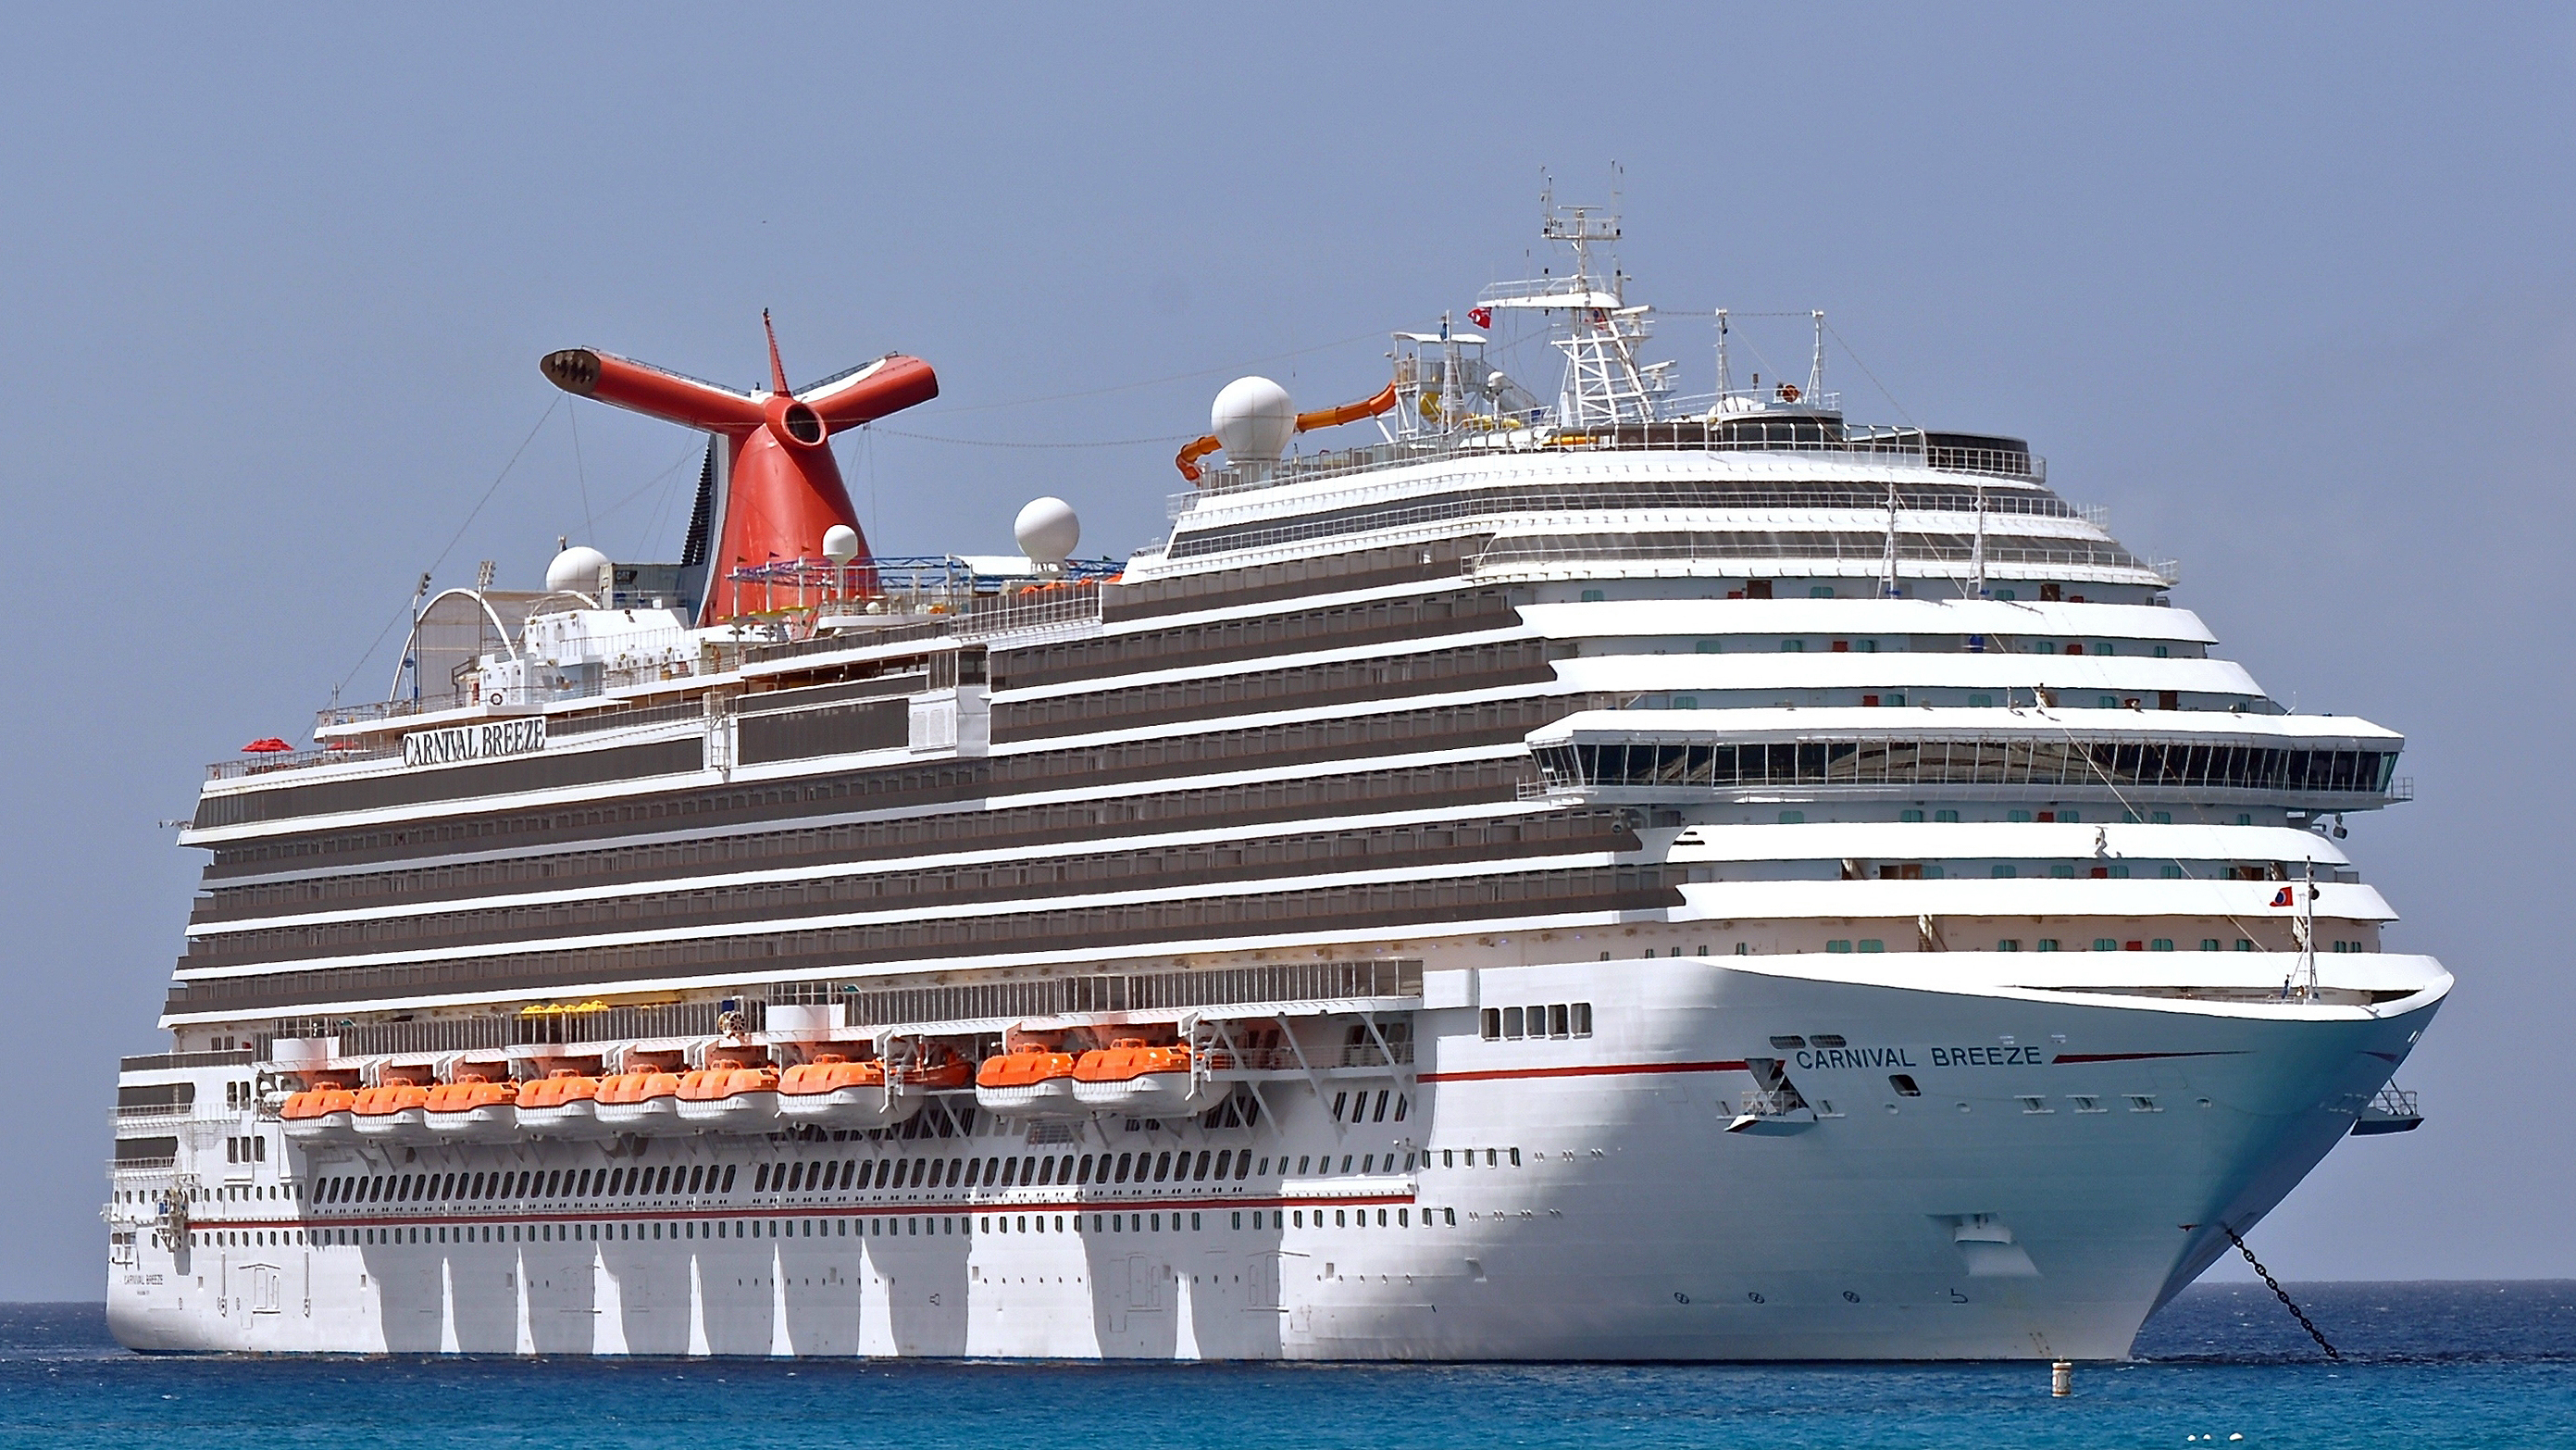 File Carnival Breeze Ship 2011 001 Cropped Jpg Wikimedia Commons